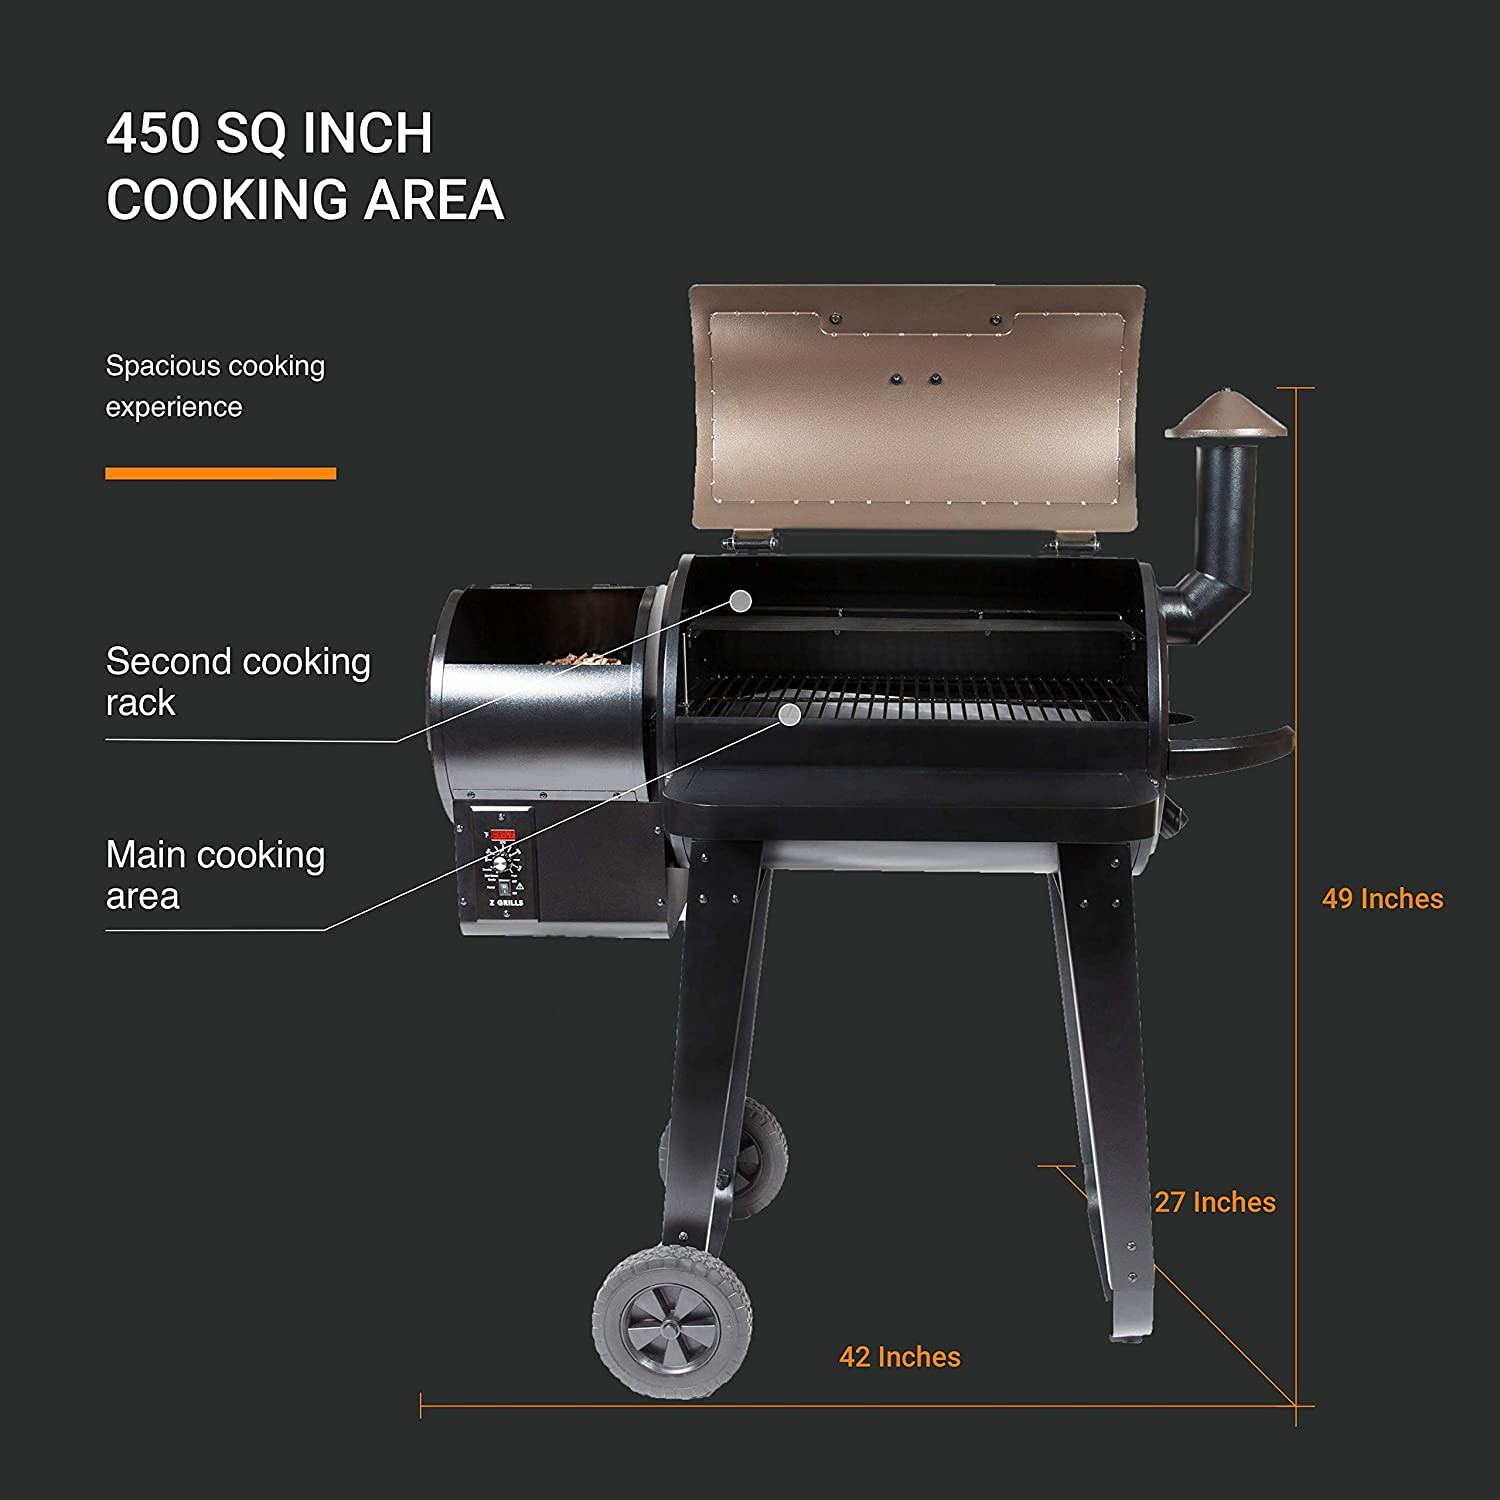 Z-Grills-ZPG-450A reviews